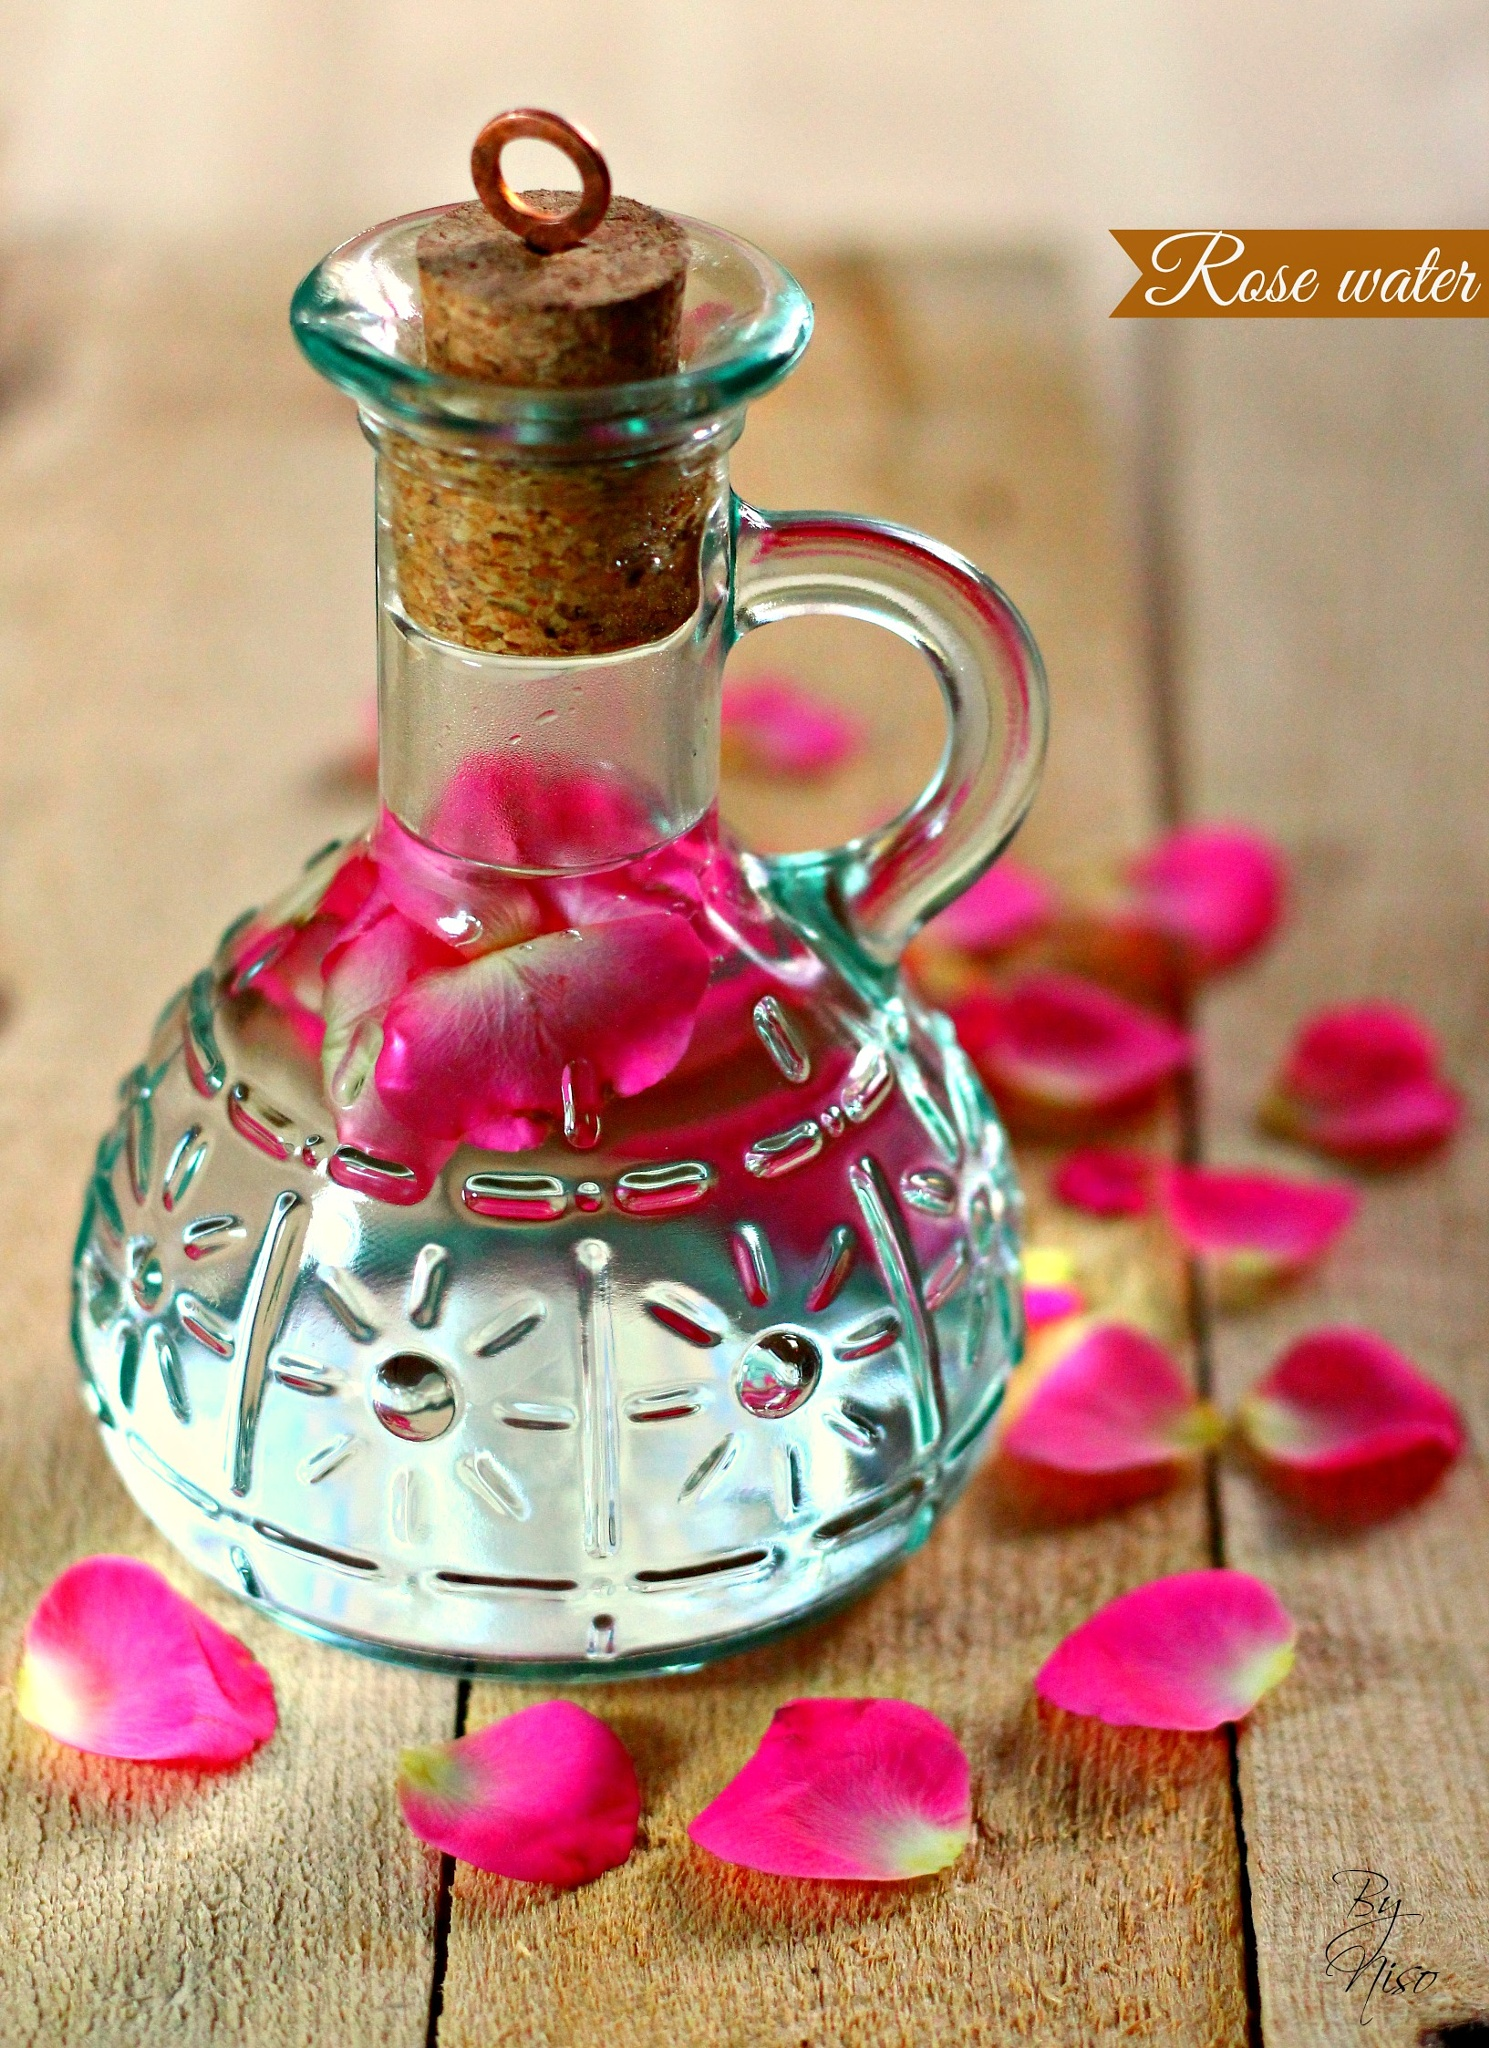 rose water by Nisreen Rahhal